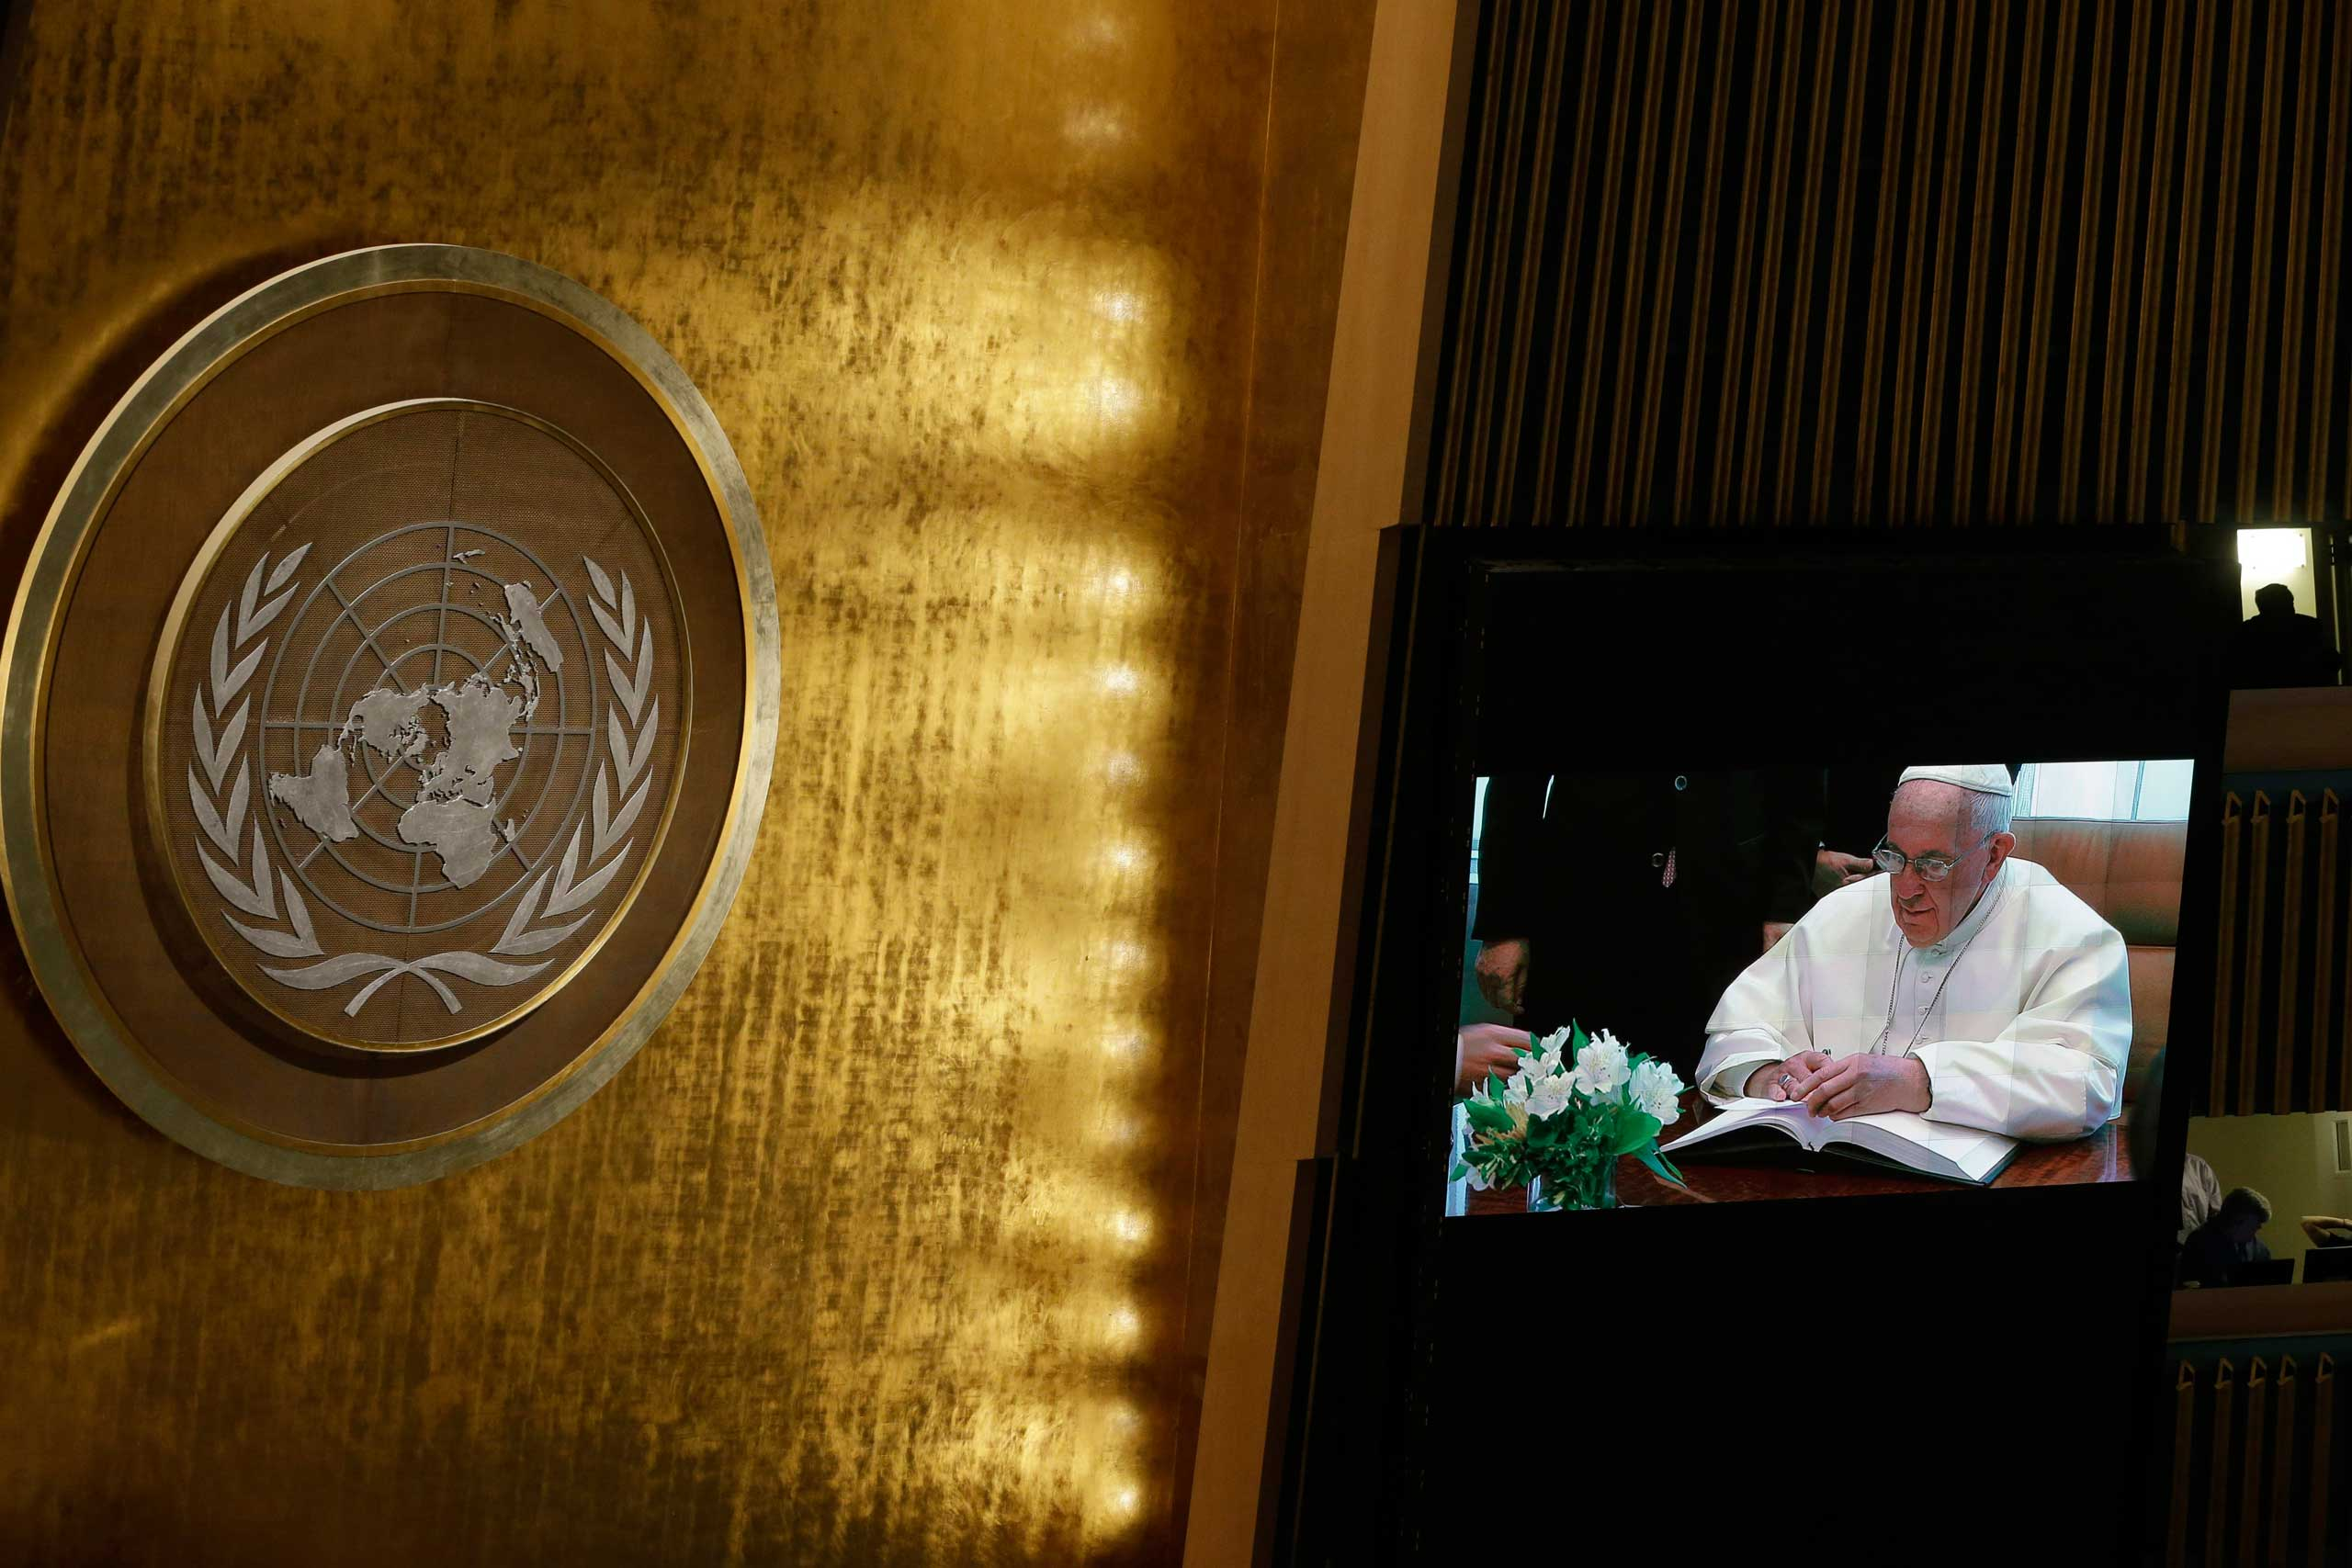 Pope Francis is seen on a video monitor as he signs the United Nations guest book before addressing the General Assembly at United Nations headquarters in New York City, on Sept. 25, 2015.